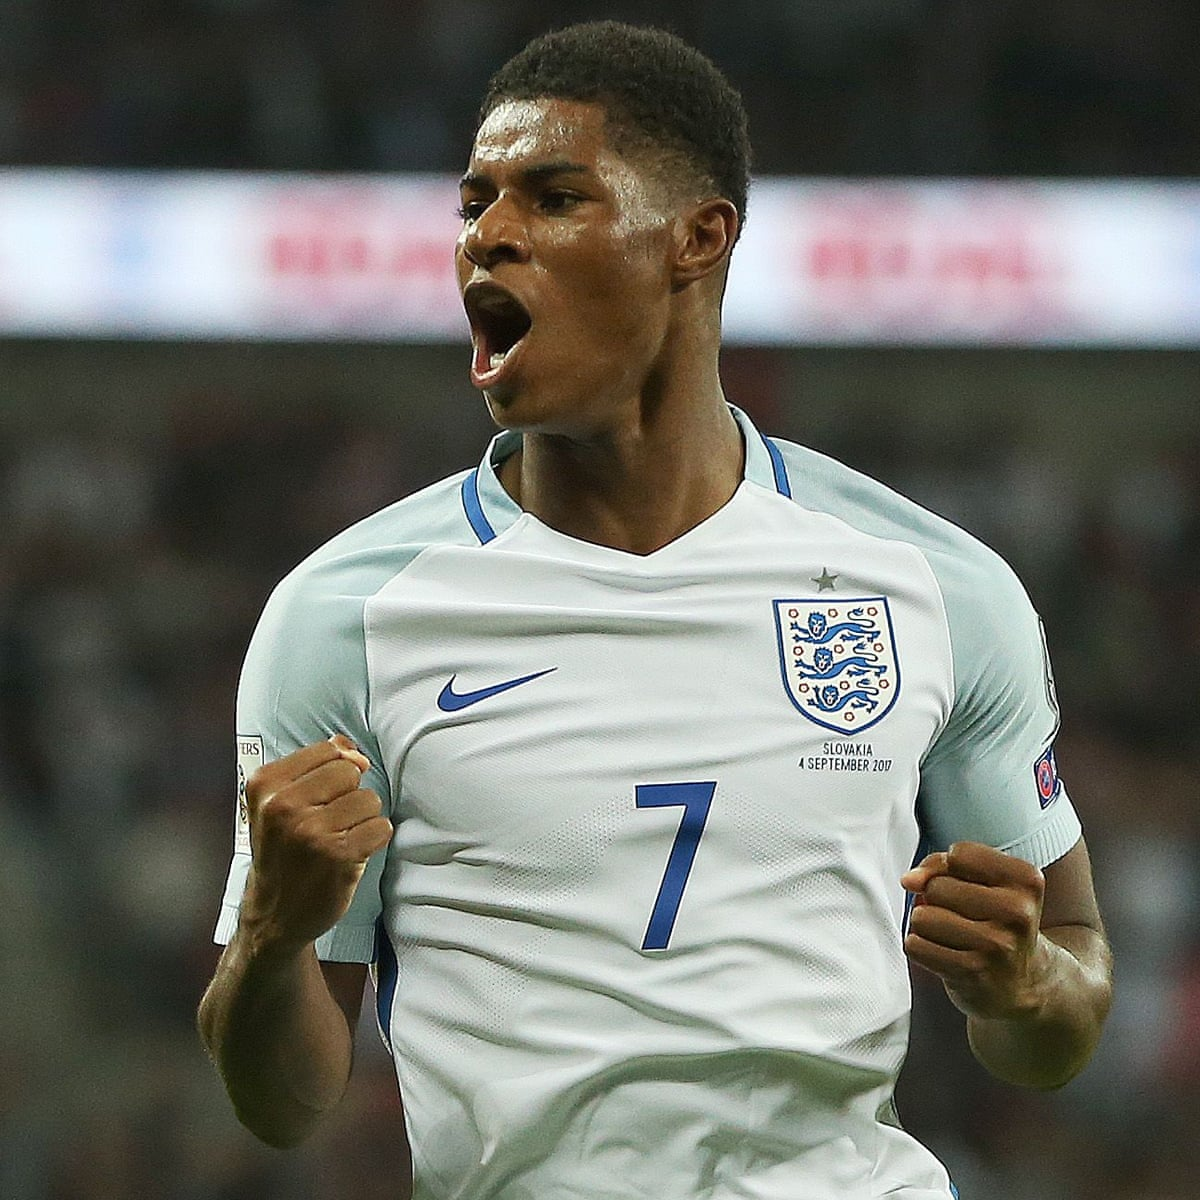 Wembley S Sullen Mood Dispelled By A Touch Of Class From Marcus Rashford Barney Ronay Football The Guardian